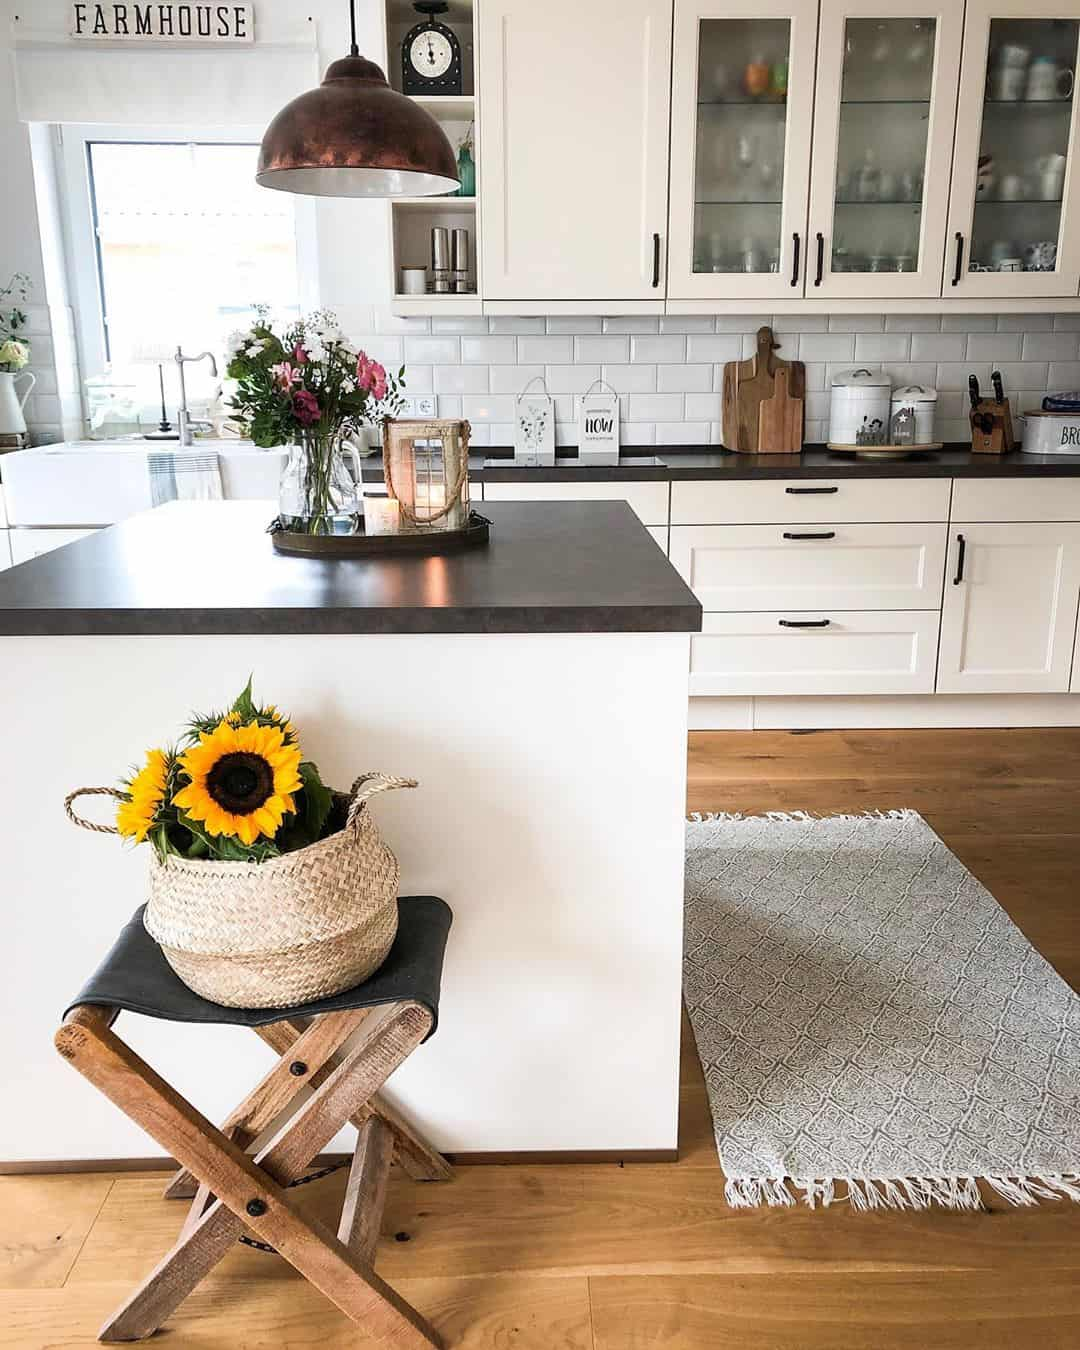 21 Clever Ideas for Decorating Your Kitchen in Farm House Style